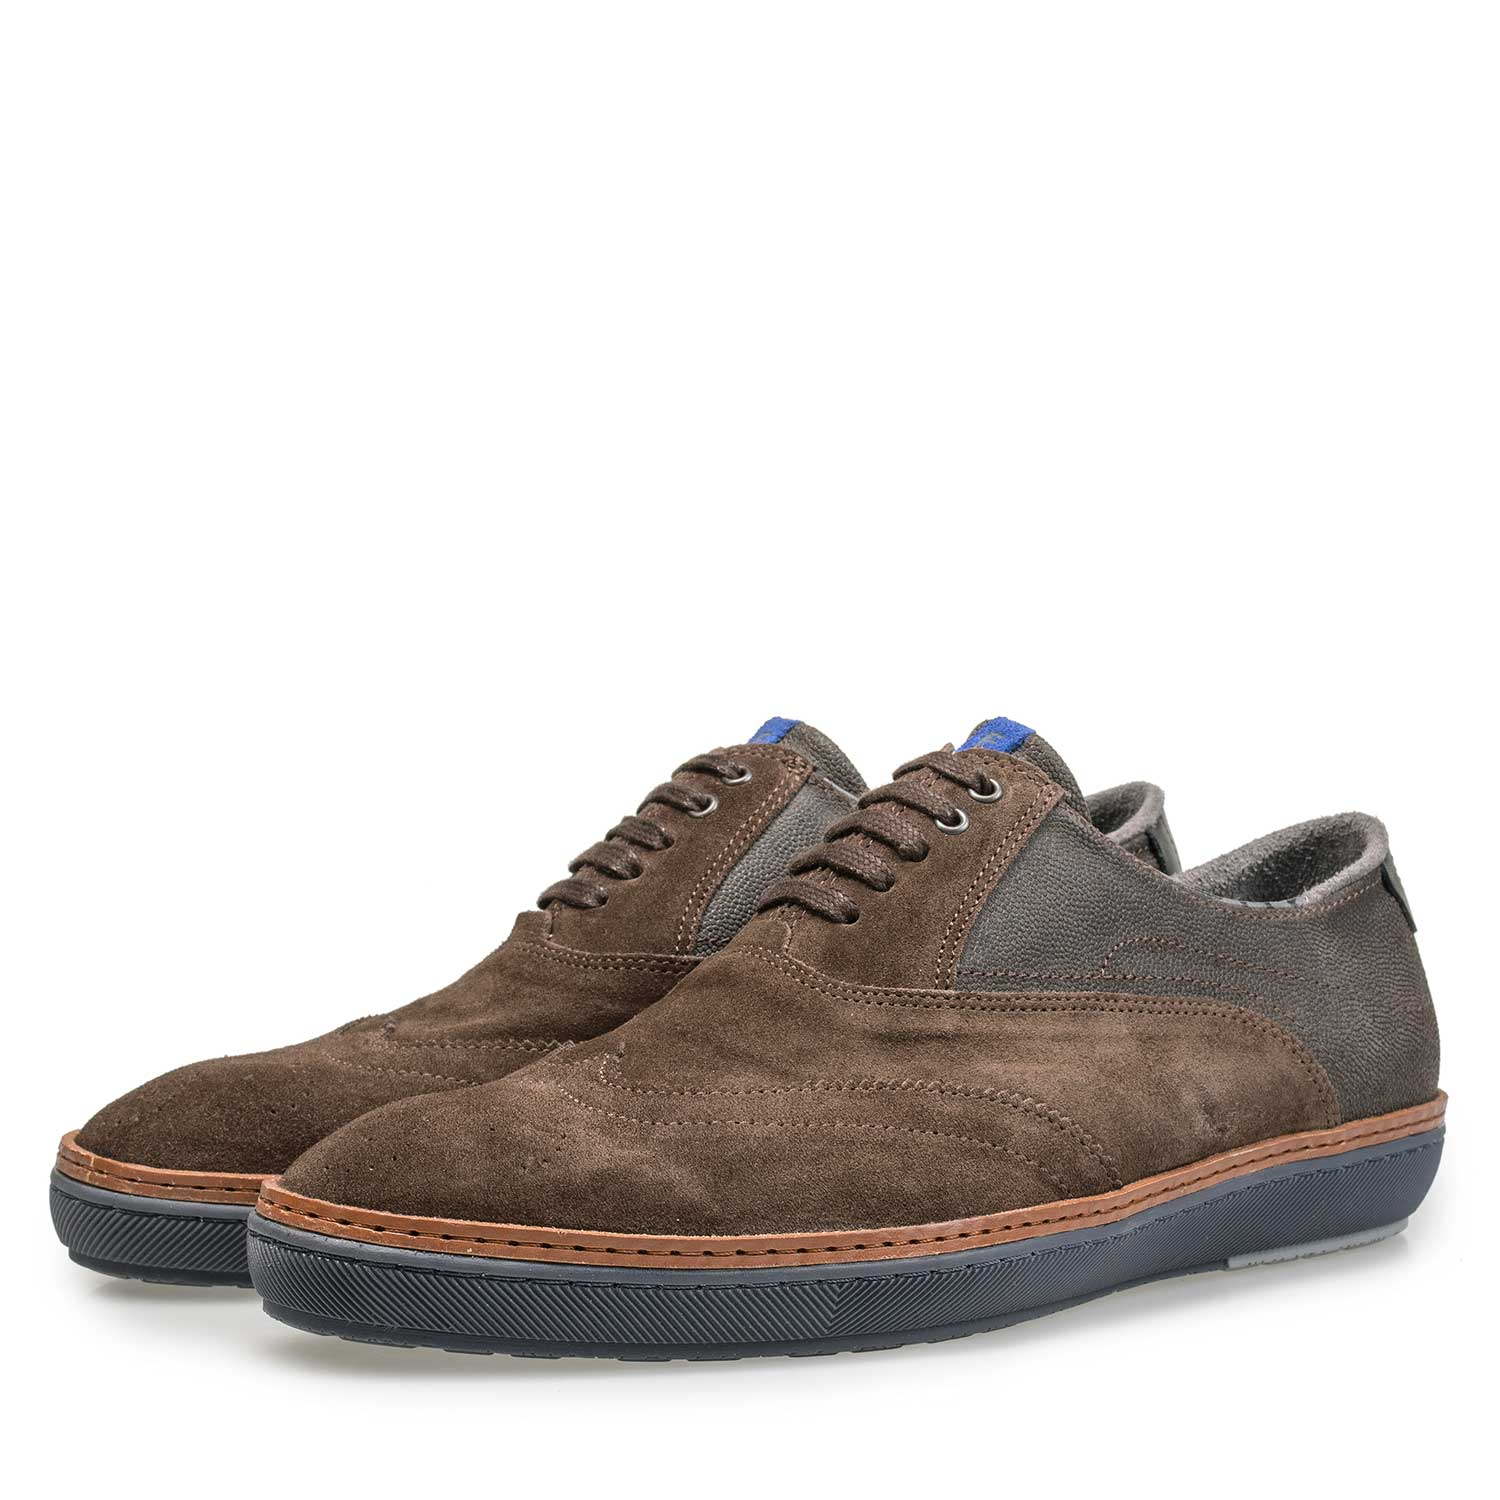 19072/05 - Brown calf's suede leather brogue sneaker